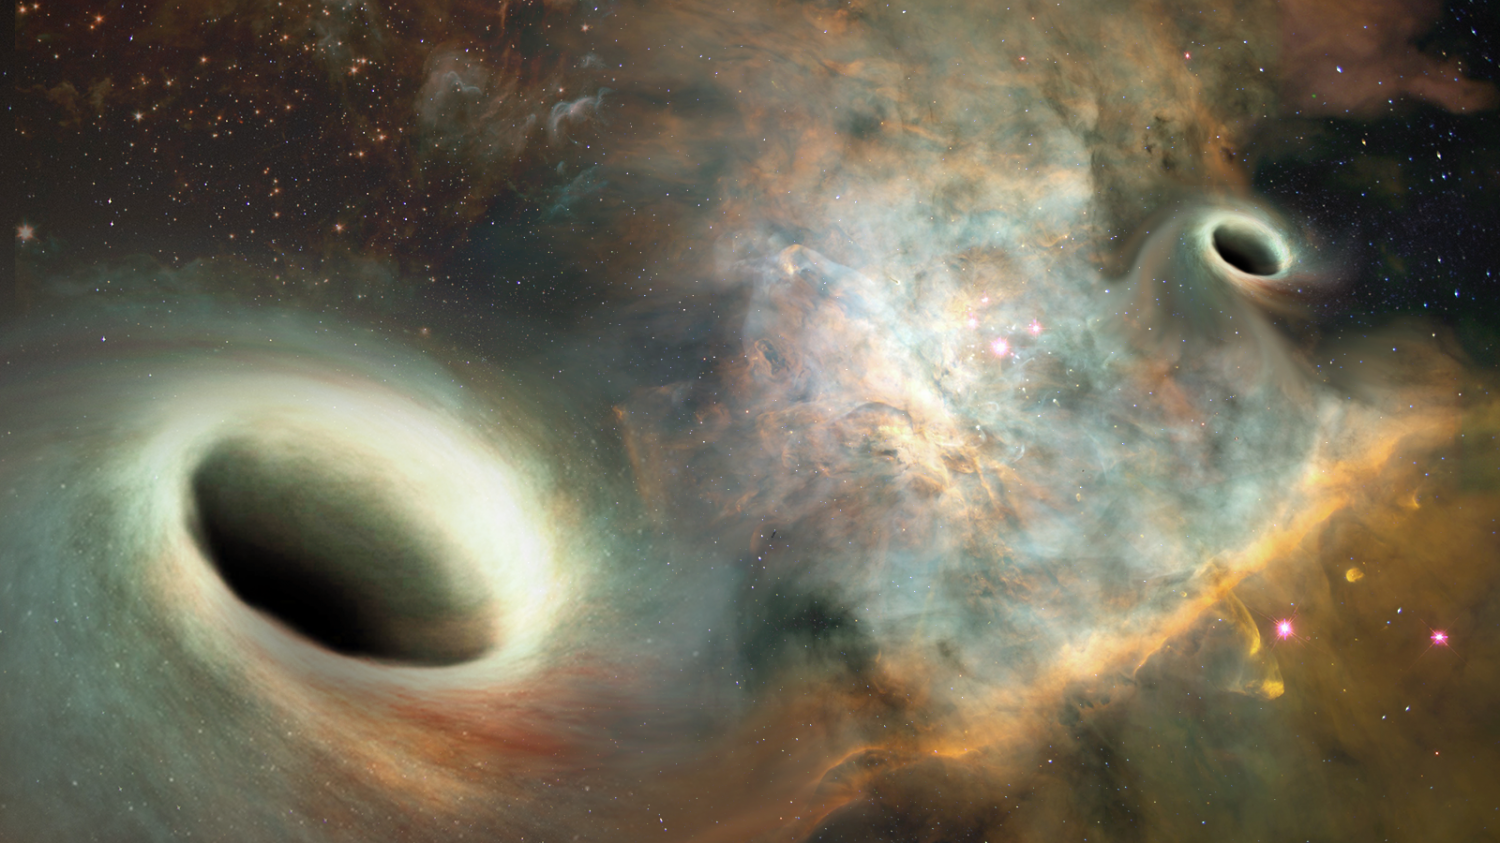 Big News! Supermassive orbiting black holes detected